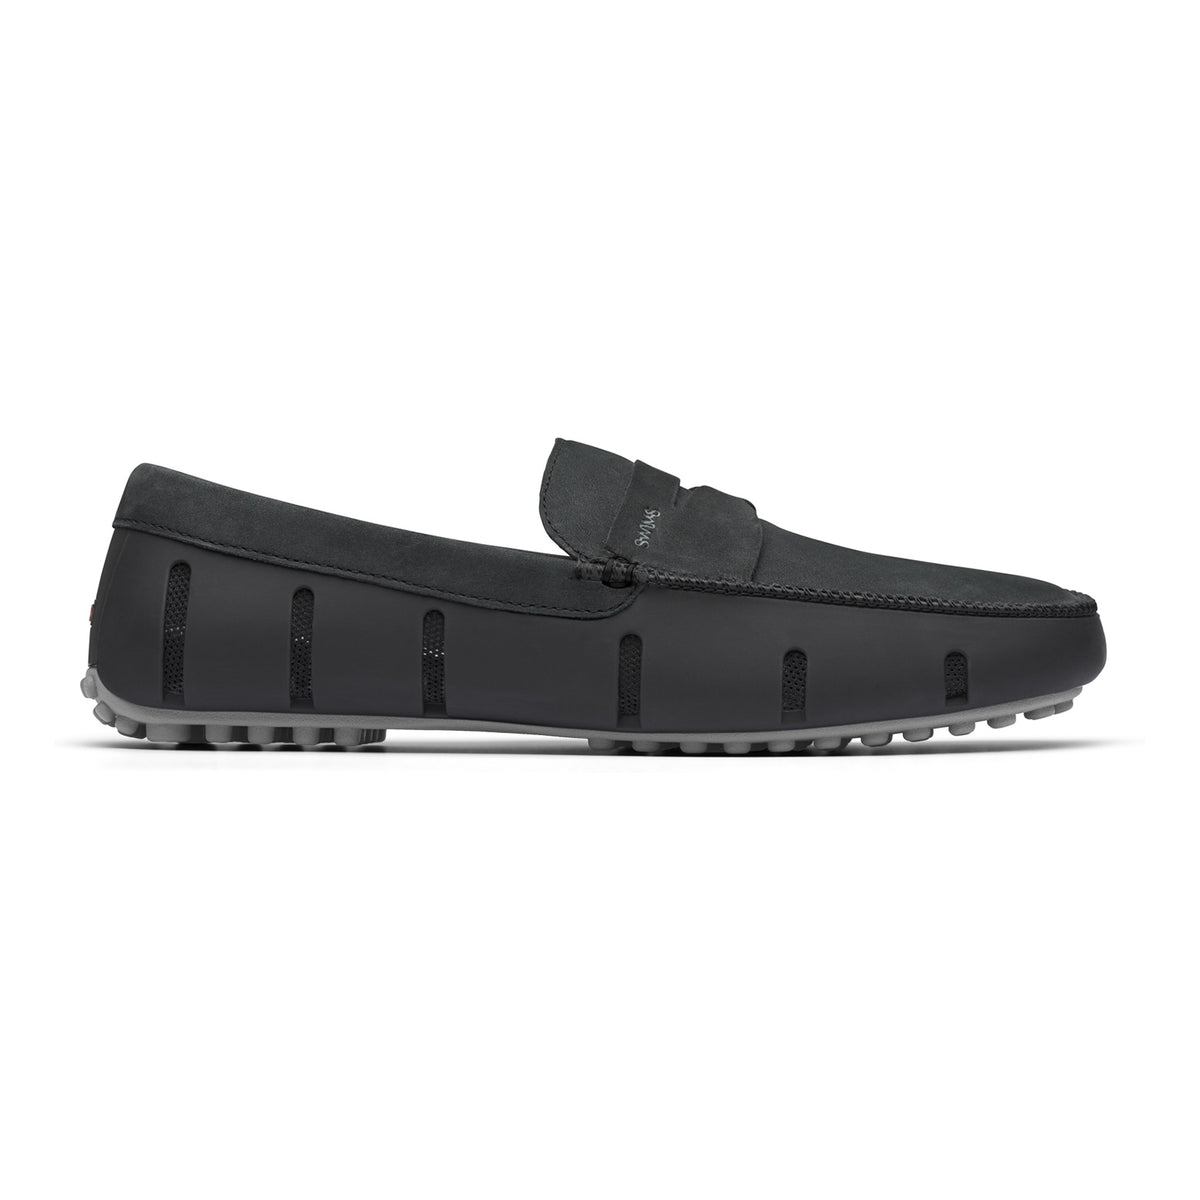 Penny Lux Loafer Driver Nubuck - background::white,variant::Black/Gray